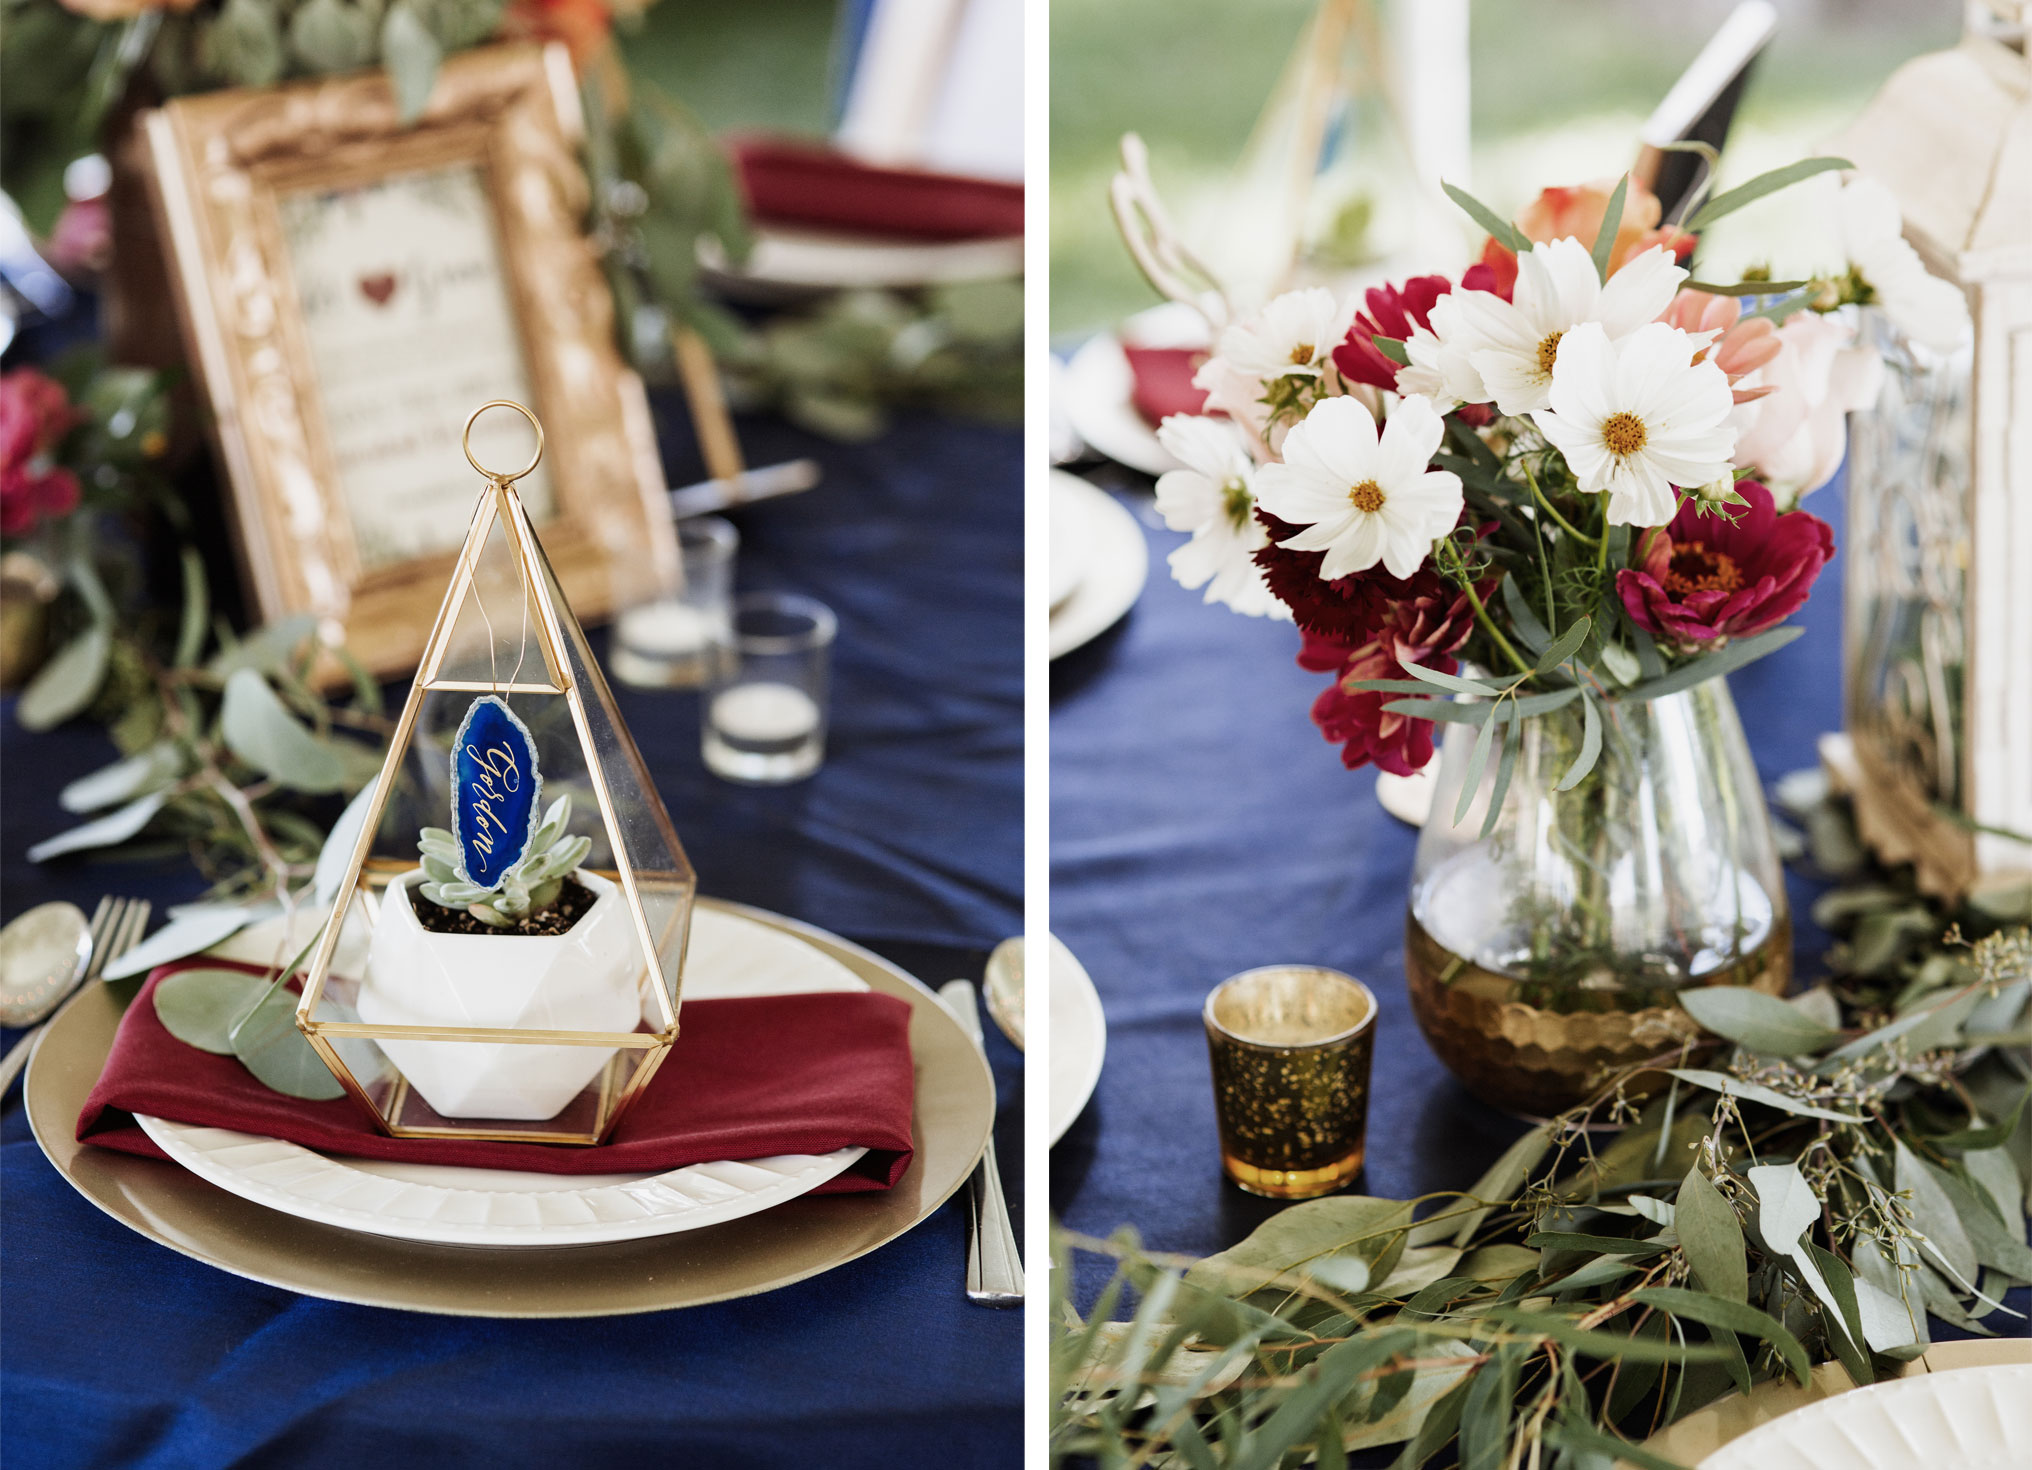 Place settings with geometric gold terrariums with a potted succulent, each has the guest's name calligraphed on a palm sized blue agate slice that hung from the terrarium